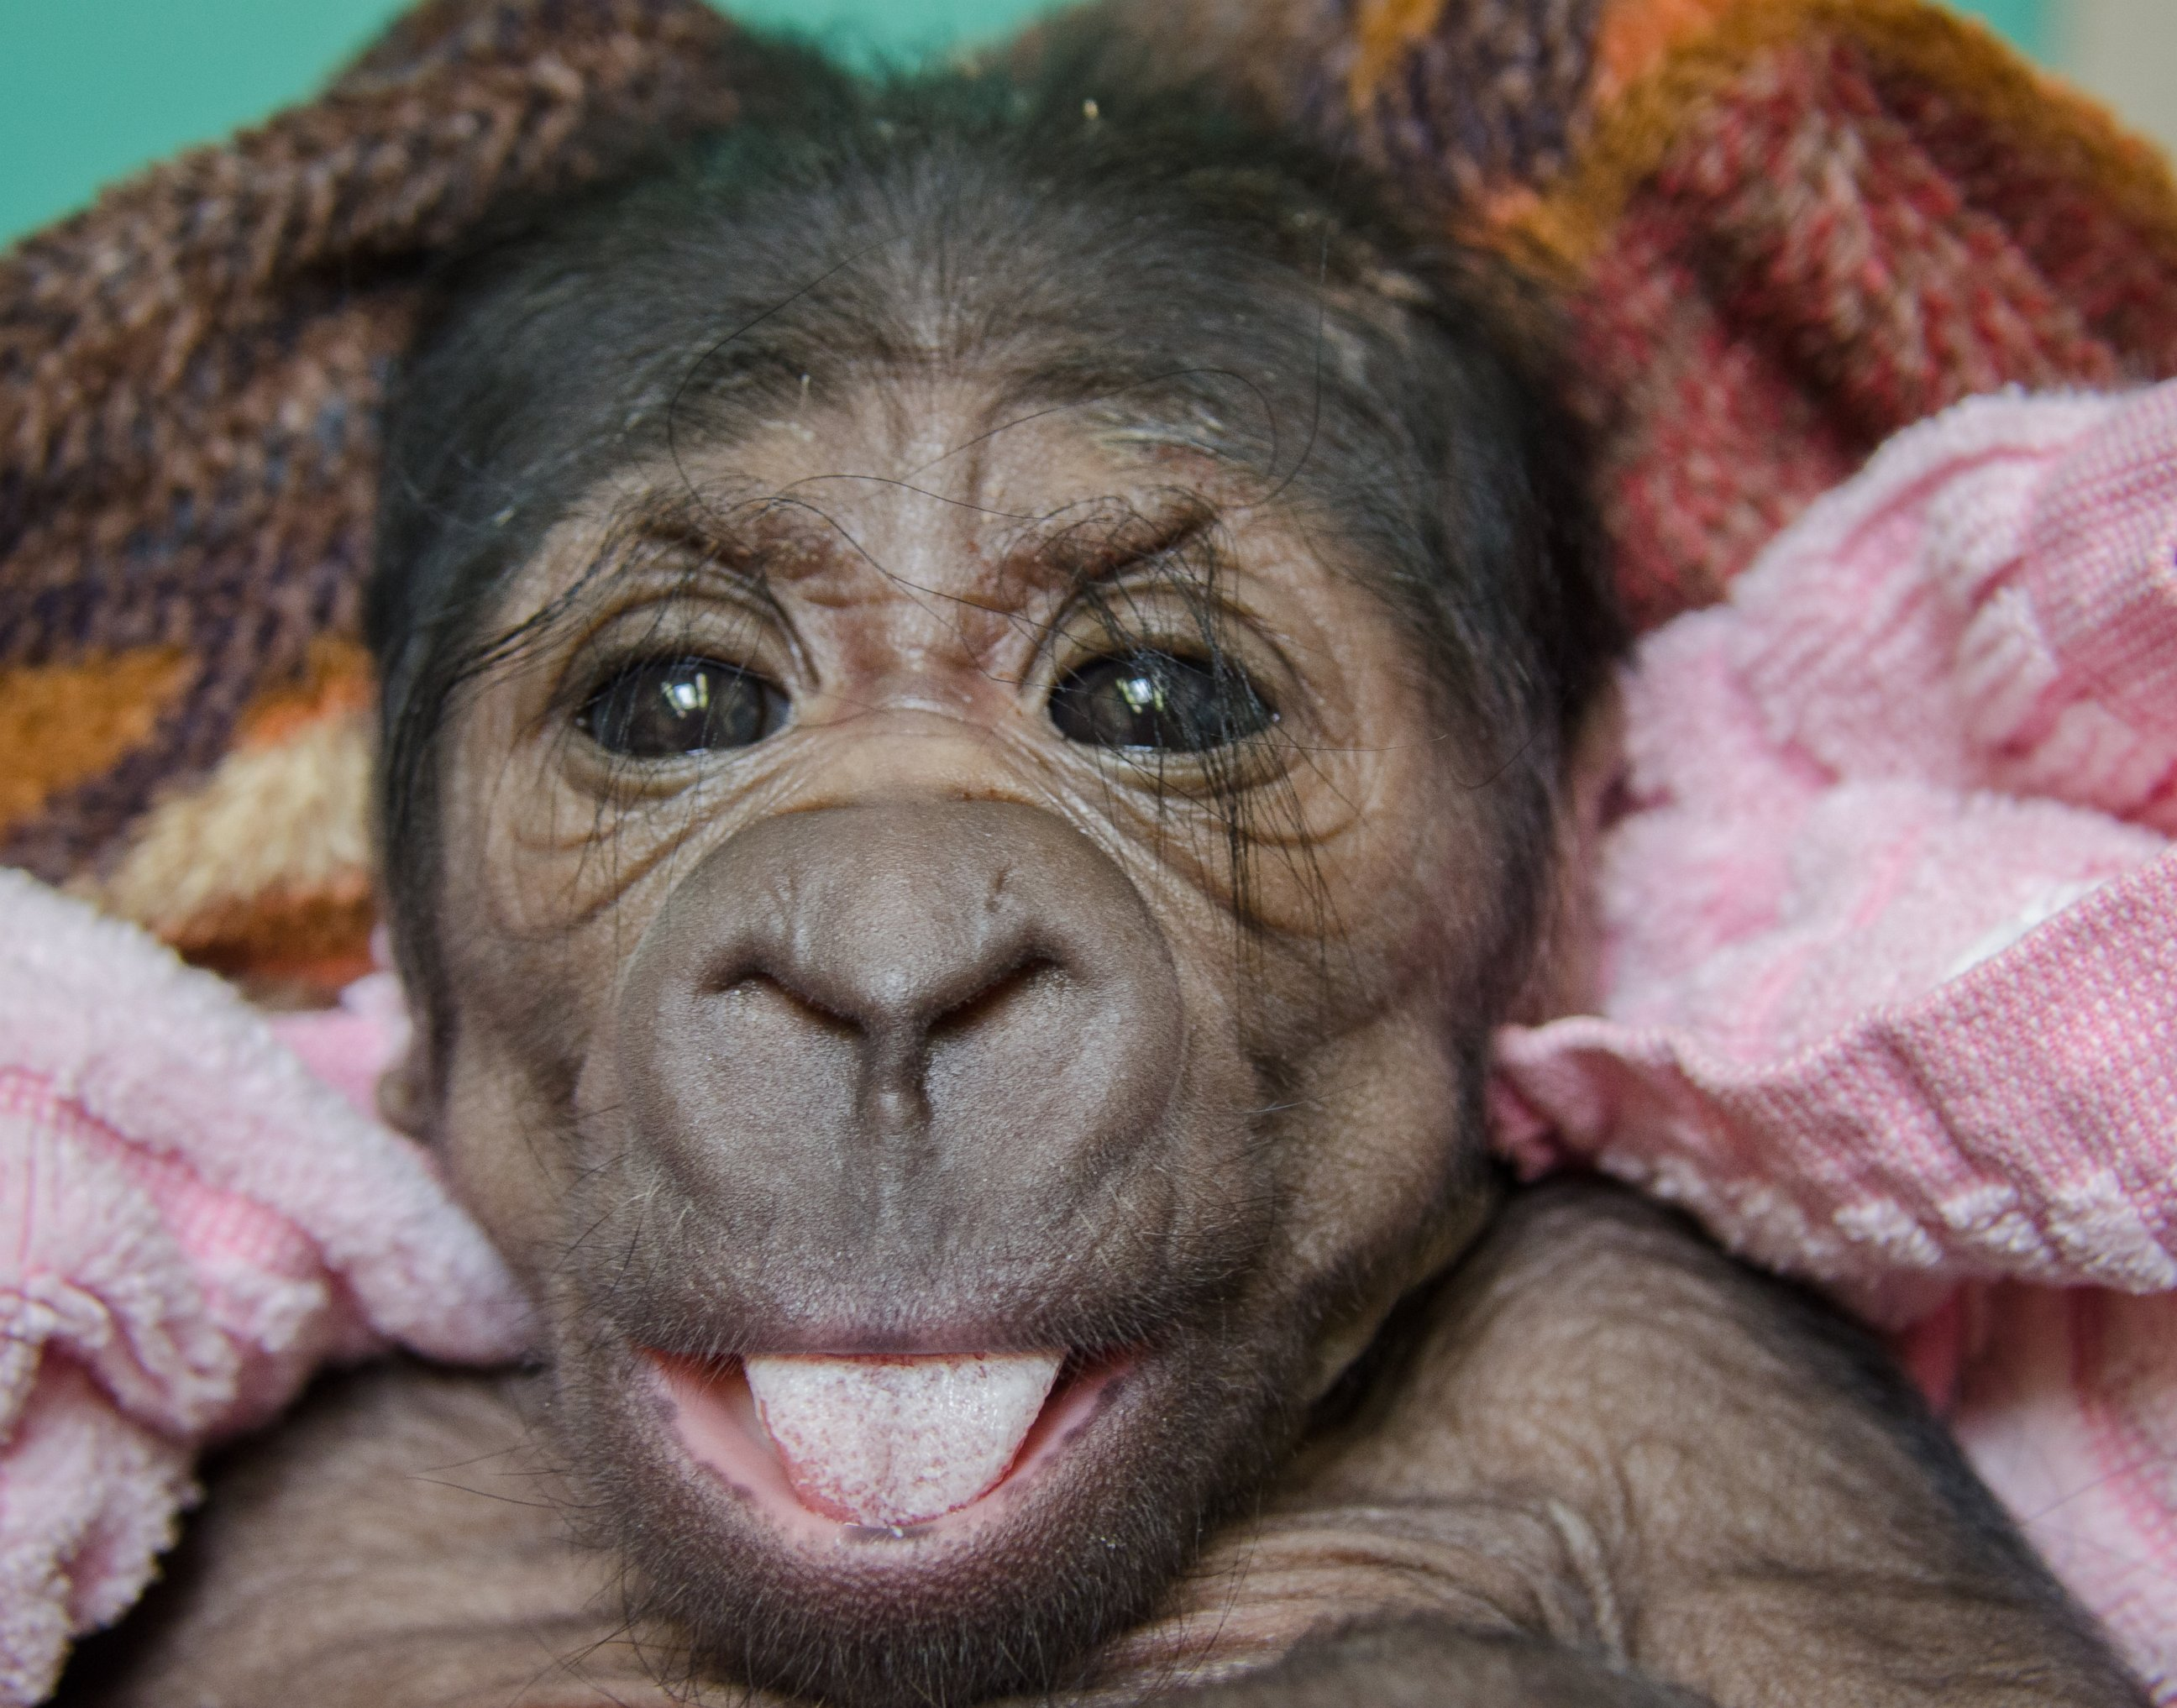 Say Cheese! A Western Lowland Gorilla Smiles for the Camera